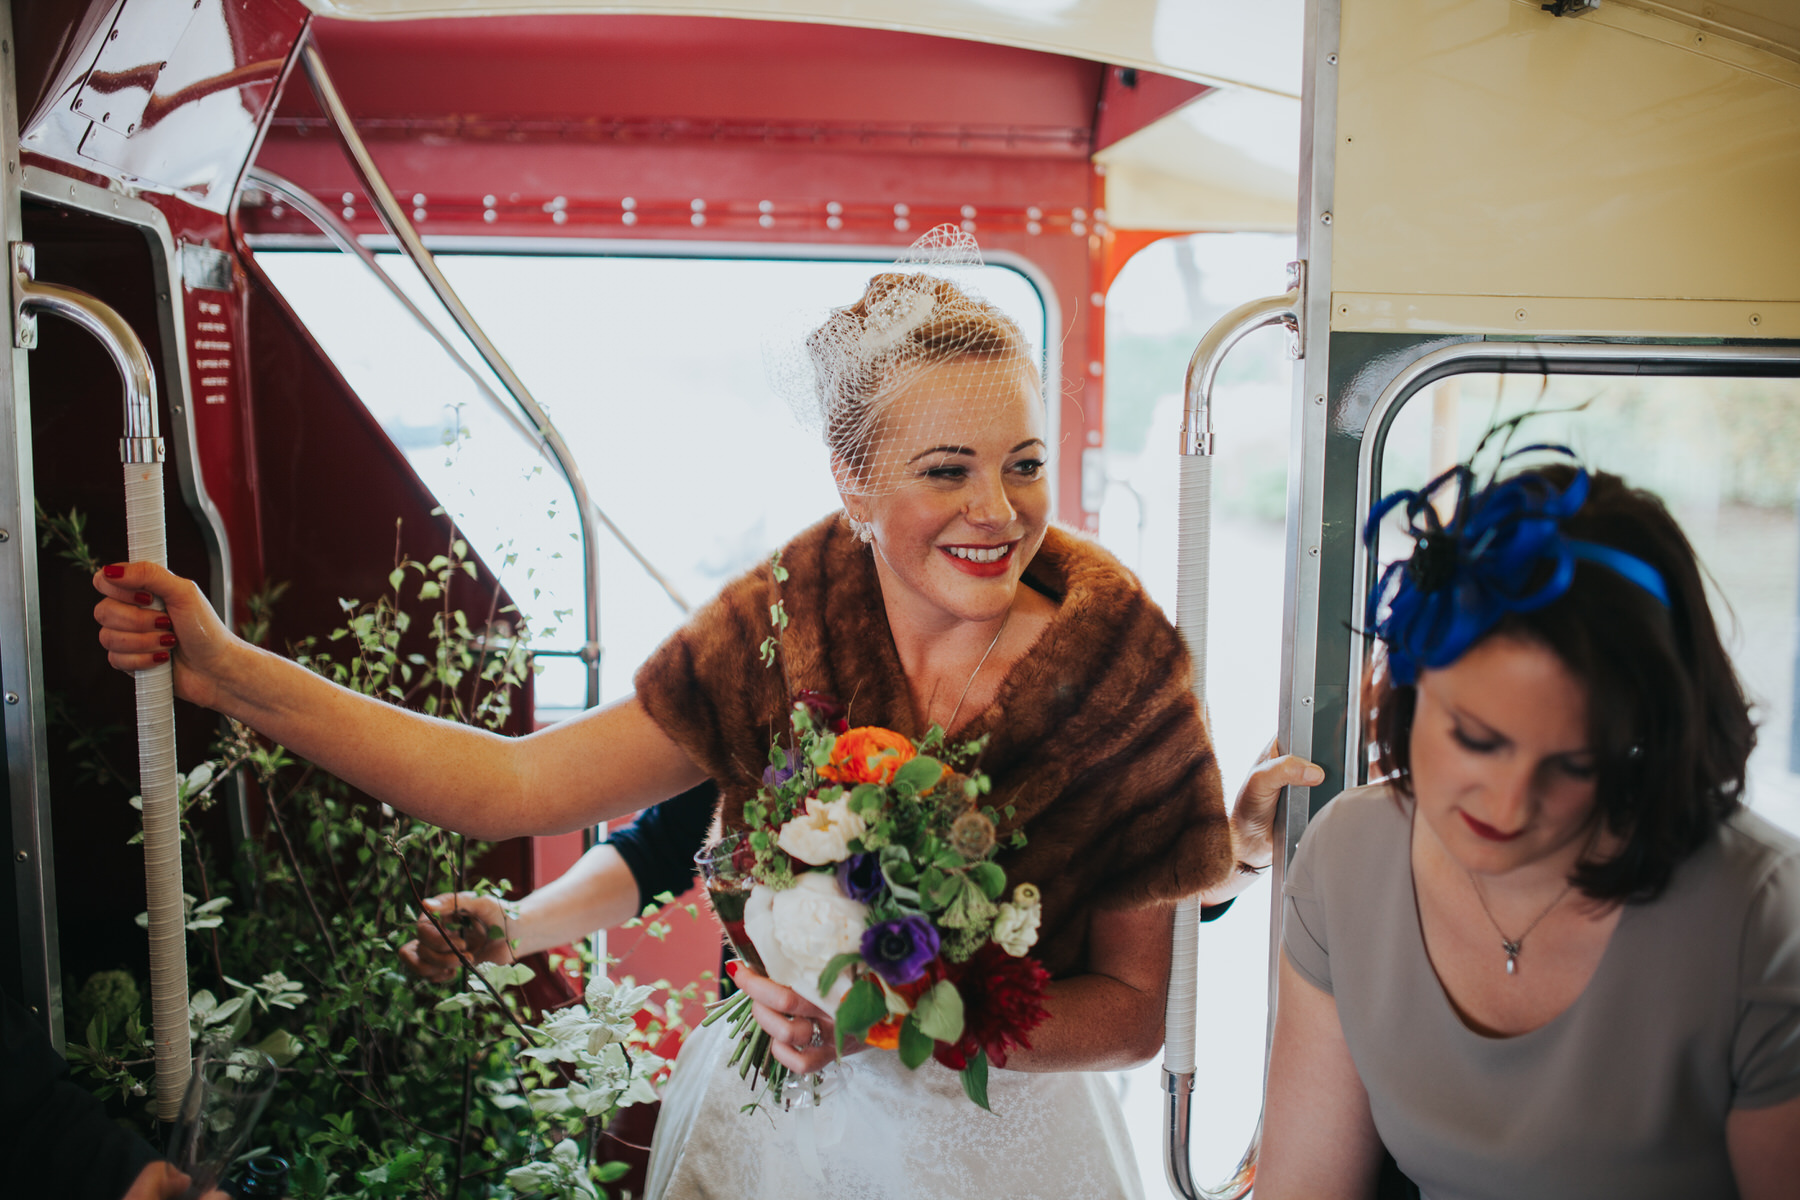 MS-Londesborough-Pub-wedding-Hackney-alternative-photographer-147-newly-married-bride-drinking-bubbly-red-london-wedding-bus.jpg